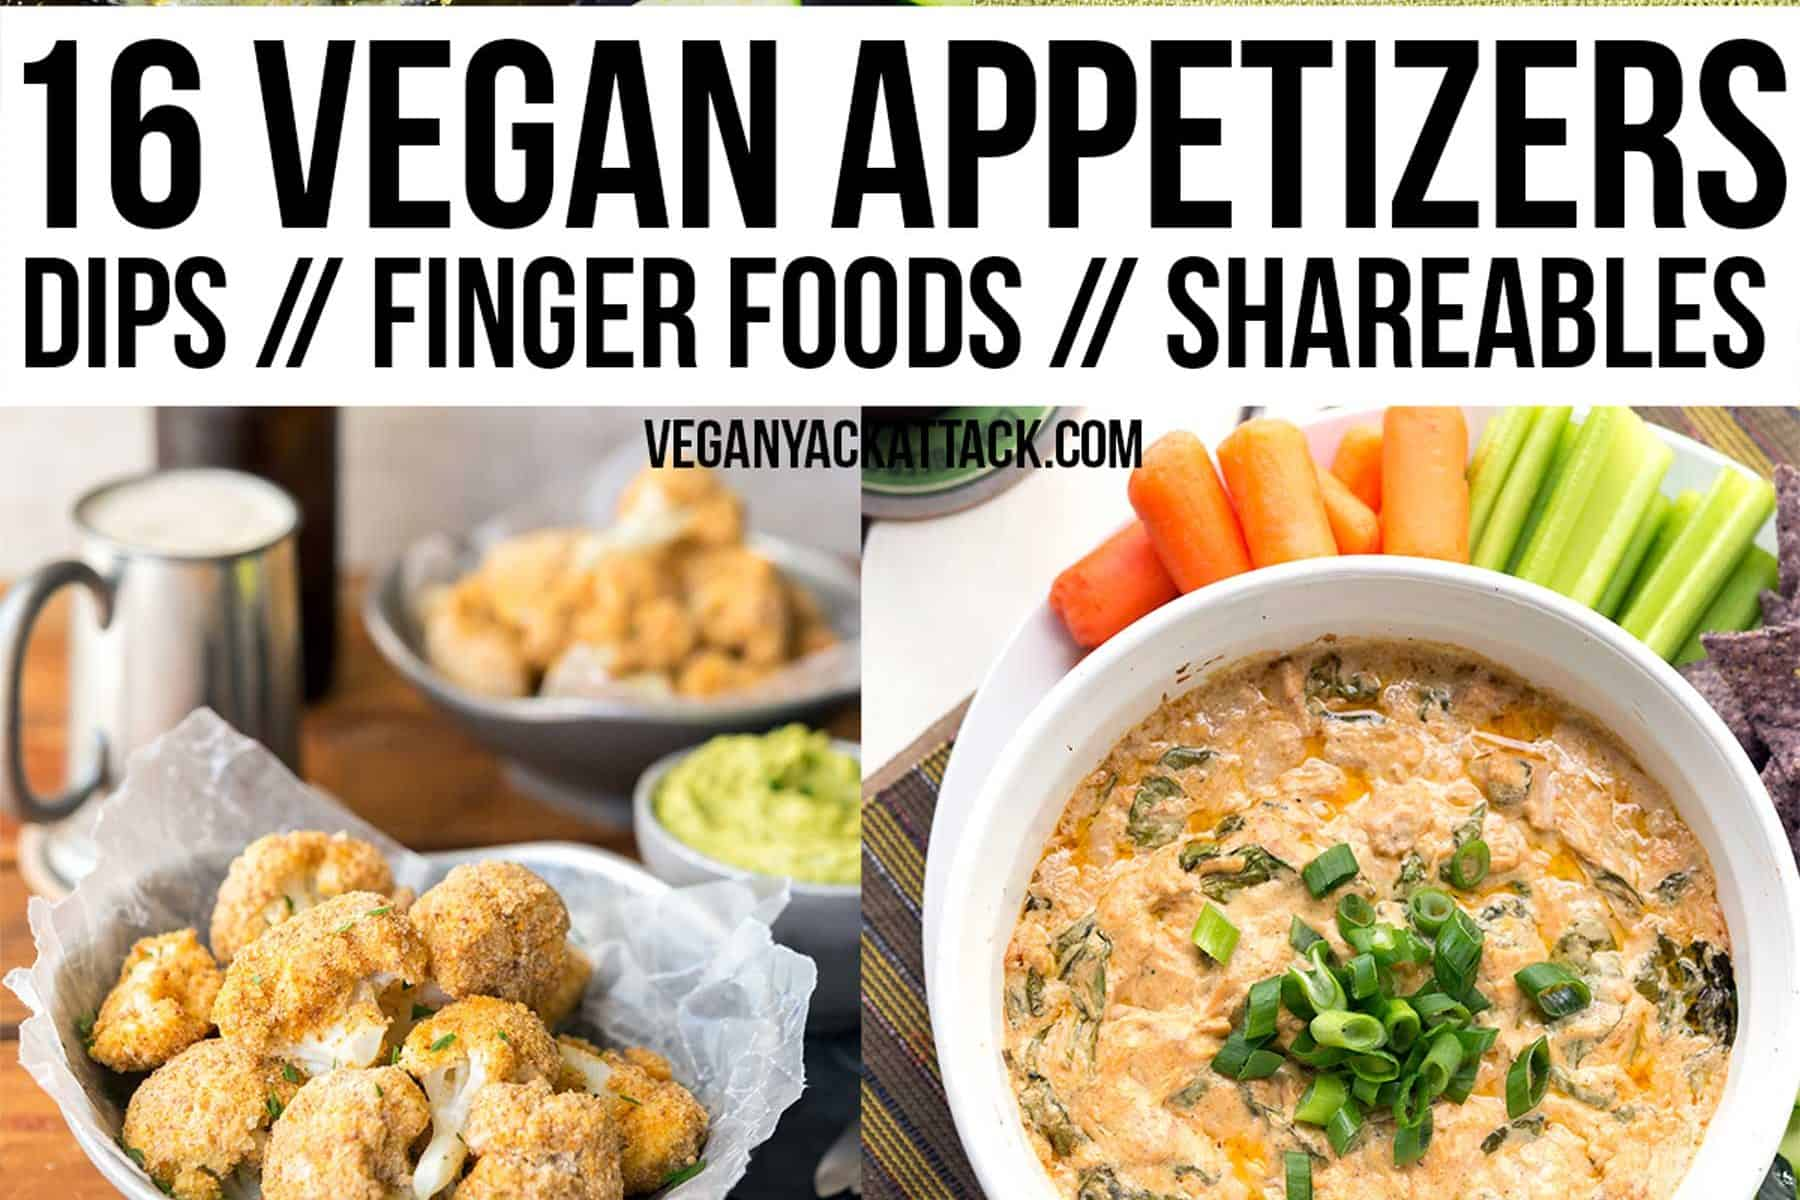 New Year's Eve is around the corner, and what better to serve at your gatherings than some fun, vegan appetizers?